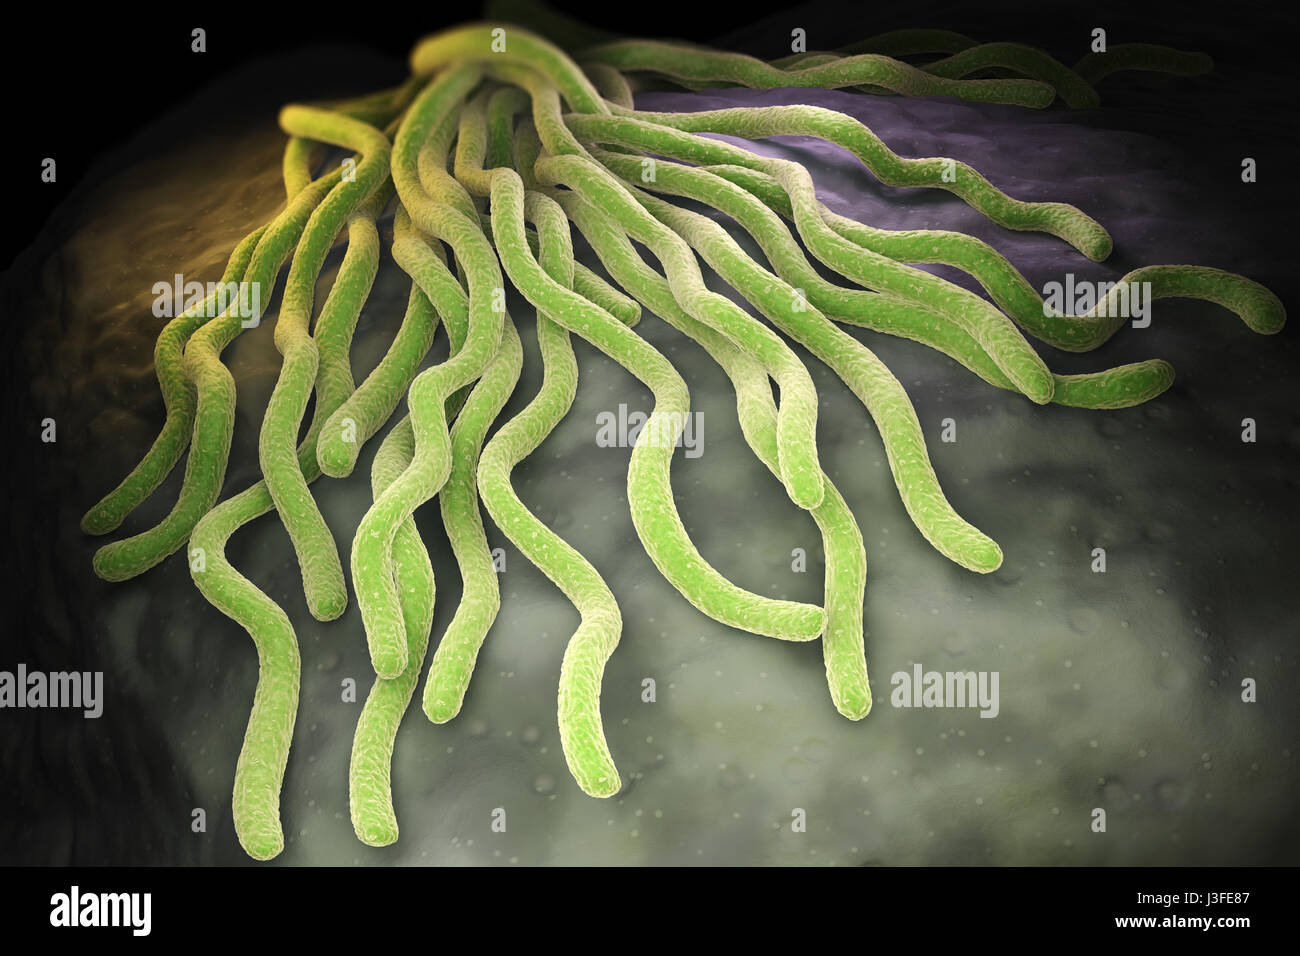 Colony of Borrelia burgdorferi bacteria, the bacterial agent of Lyme disease transmitted by ticks. 3D illustration - Stock Image